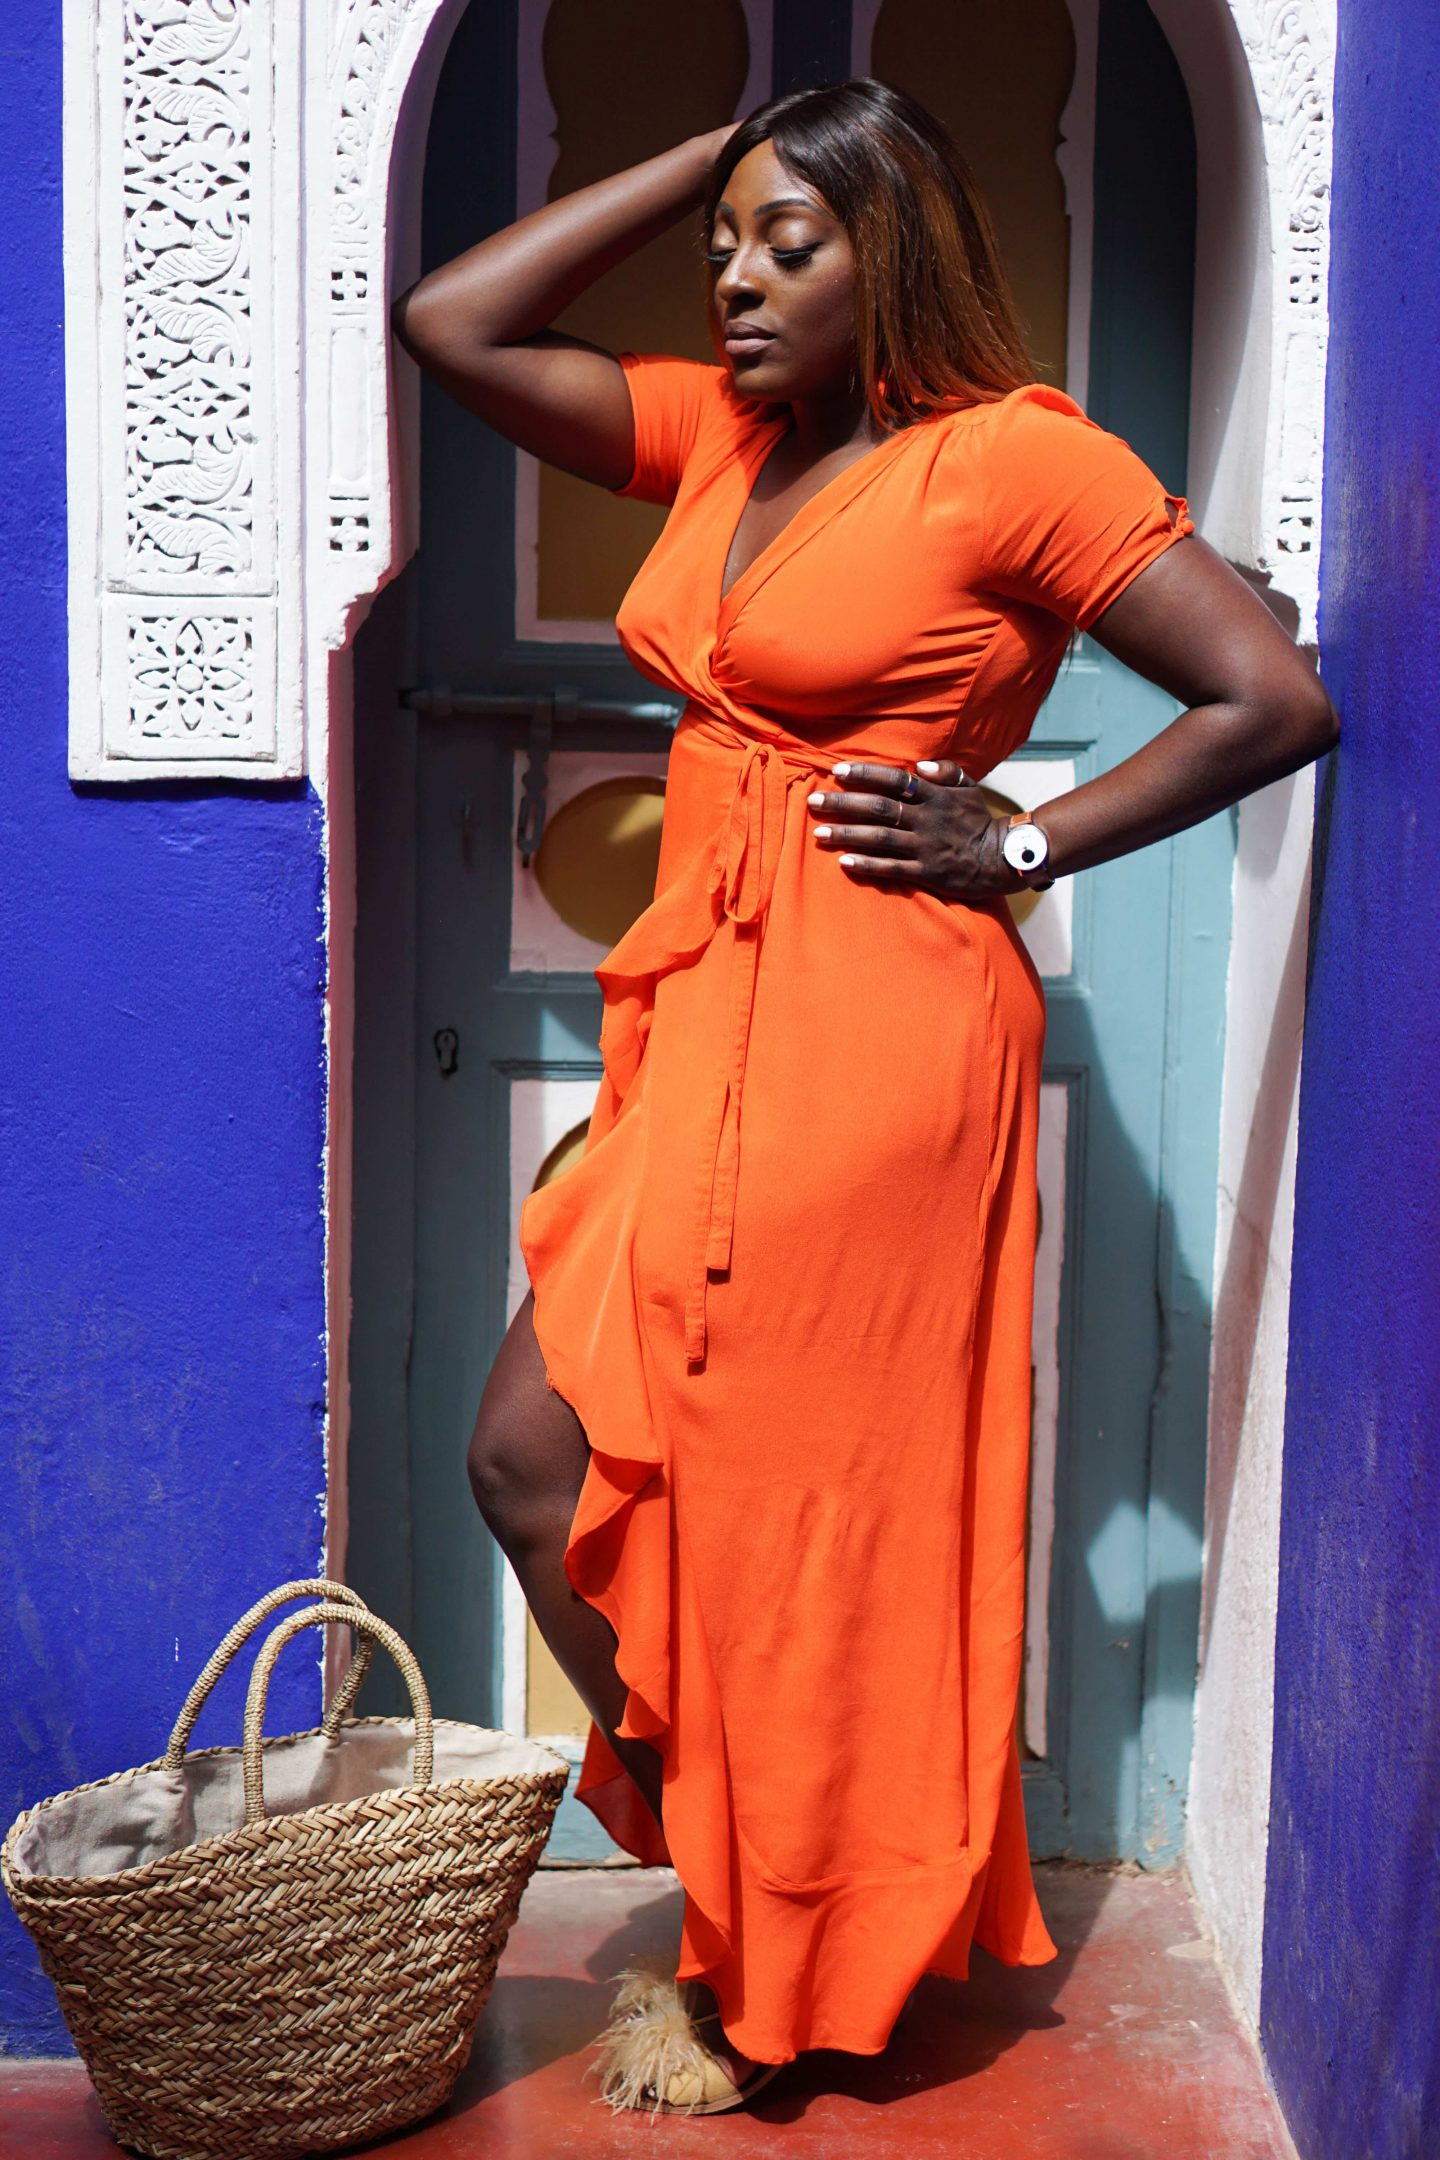 Marrakech - Le Jardin Majorelle Yves Saint Laurent 4 - Orange maxi dress from ASOS - Style and the Sass